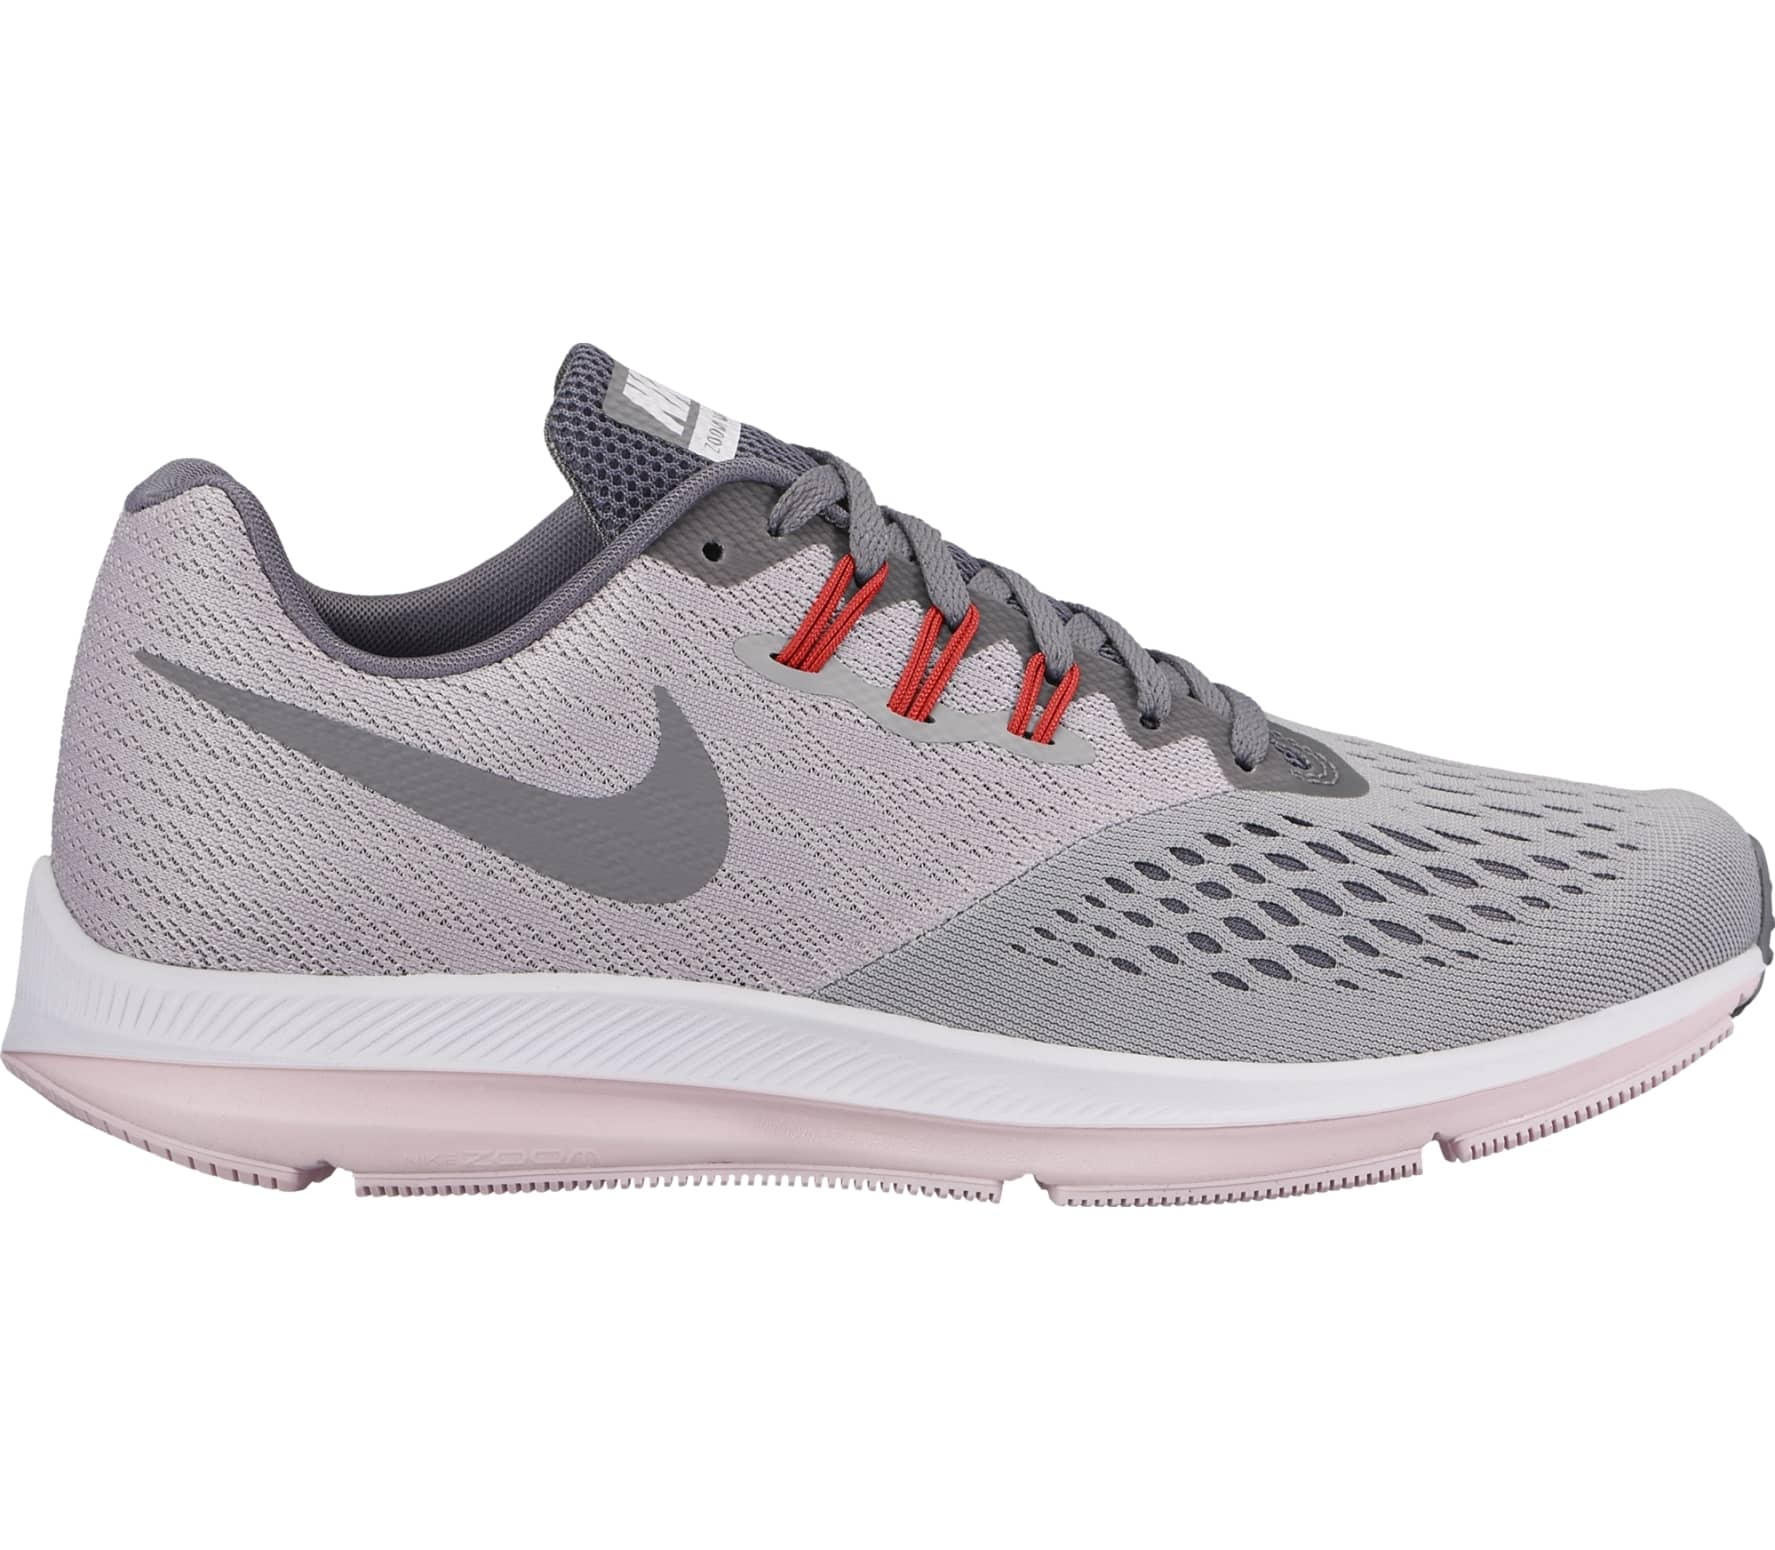 92b6f210ec7a5 Nike - Air Zoom Winflo 4 women s running shoes (light grey pink ...